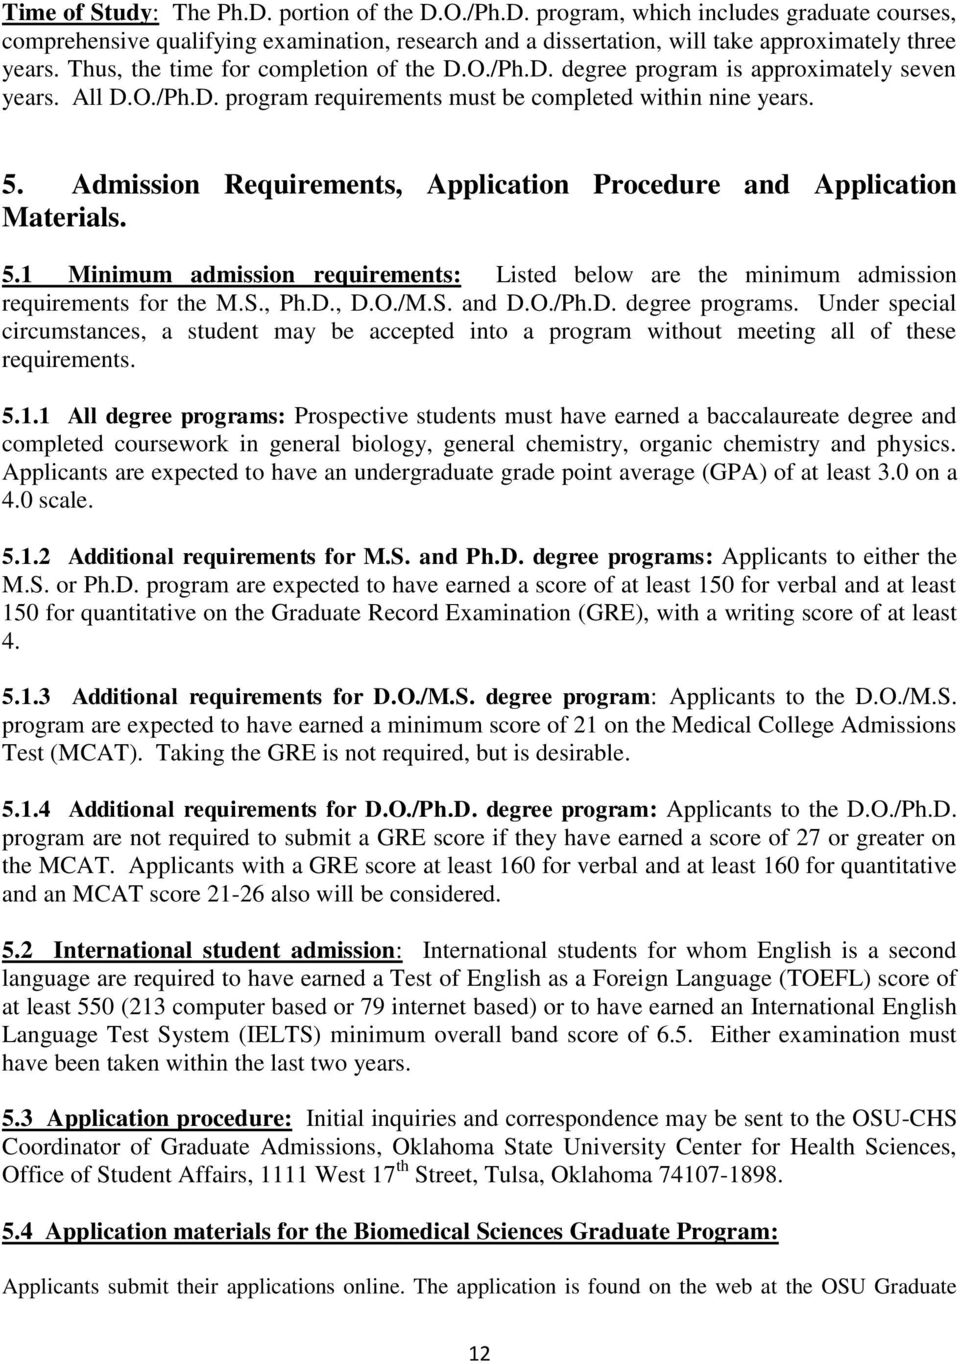 Admission Requirements, Application Procedure and Application Materials. 5.1 Minimum admission requirements: Listed below are the minimum admission requirements for the M.S., Ph.D., D.O./M.S. and D.O./Ph.